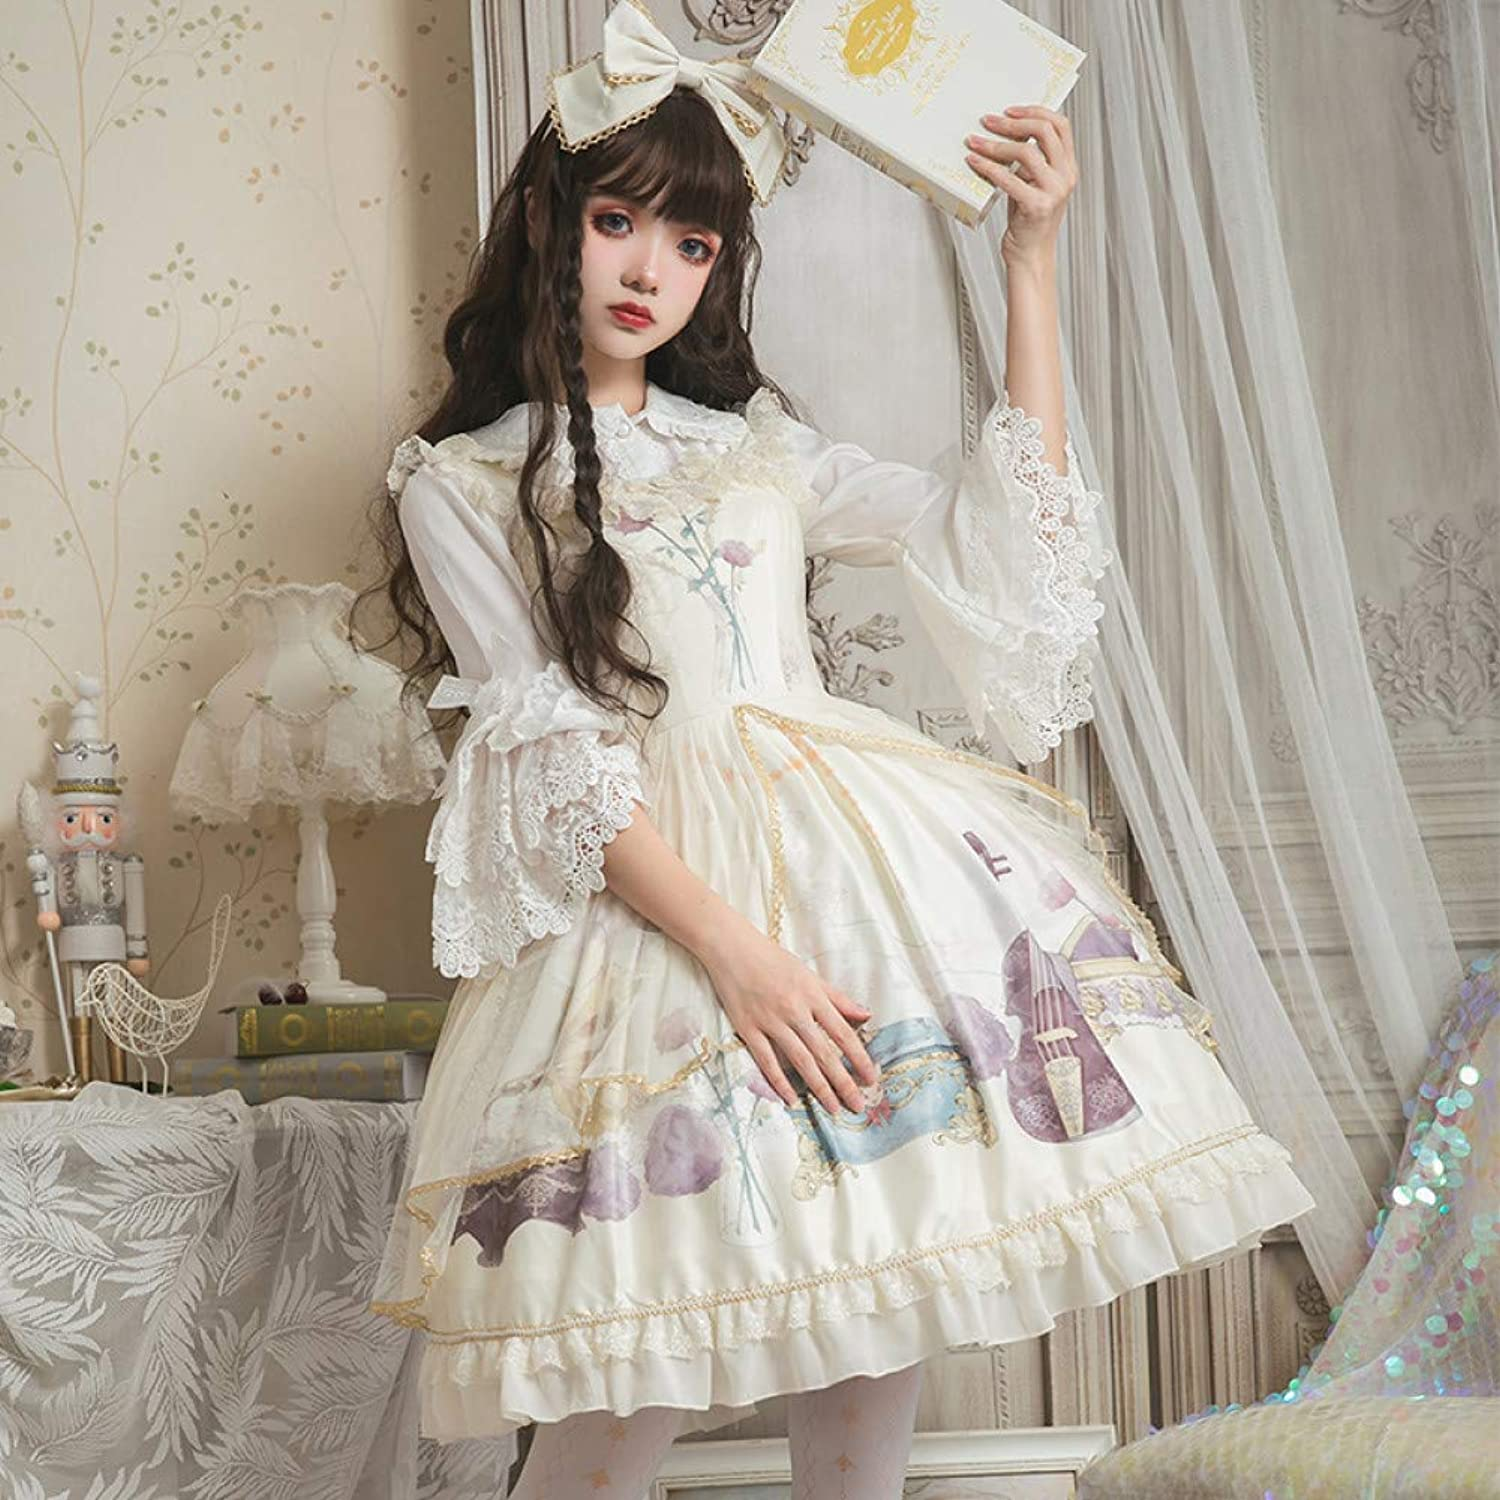 QAQBDBCKL Original Design Lolita Dress Royal Court Retro Jsk Only Suspender Dress Lolita Dress